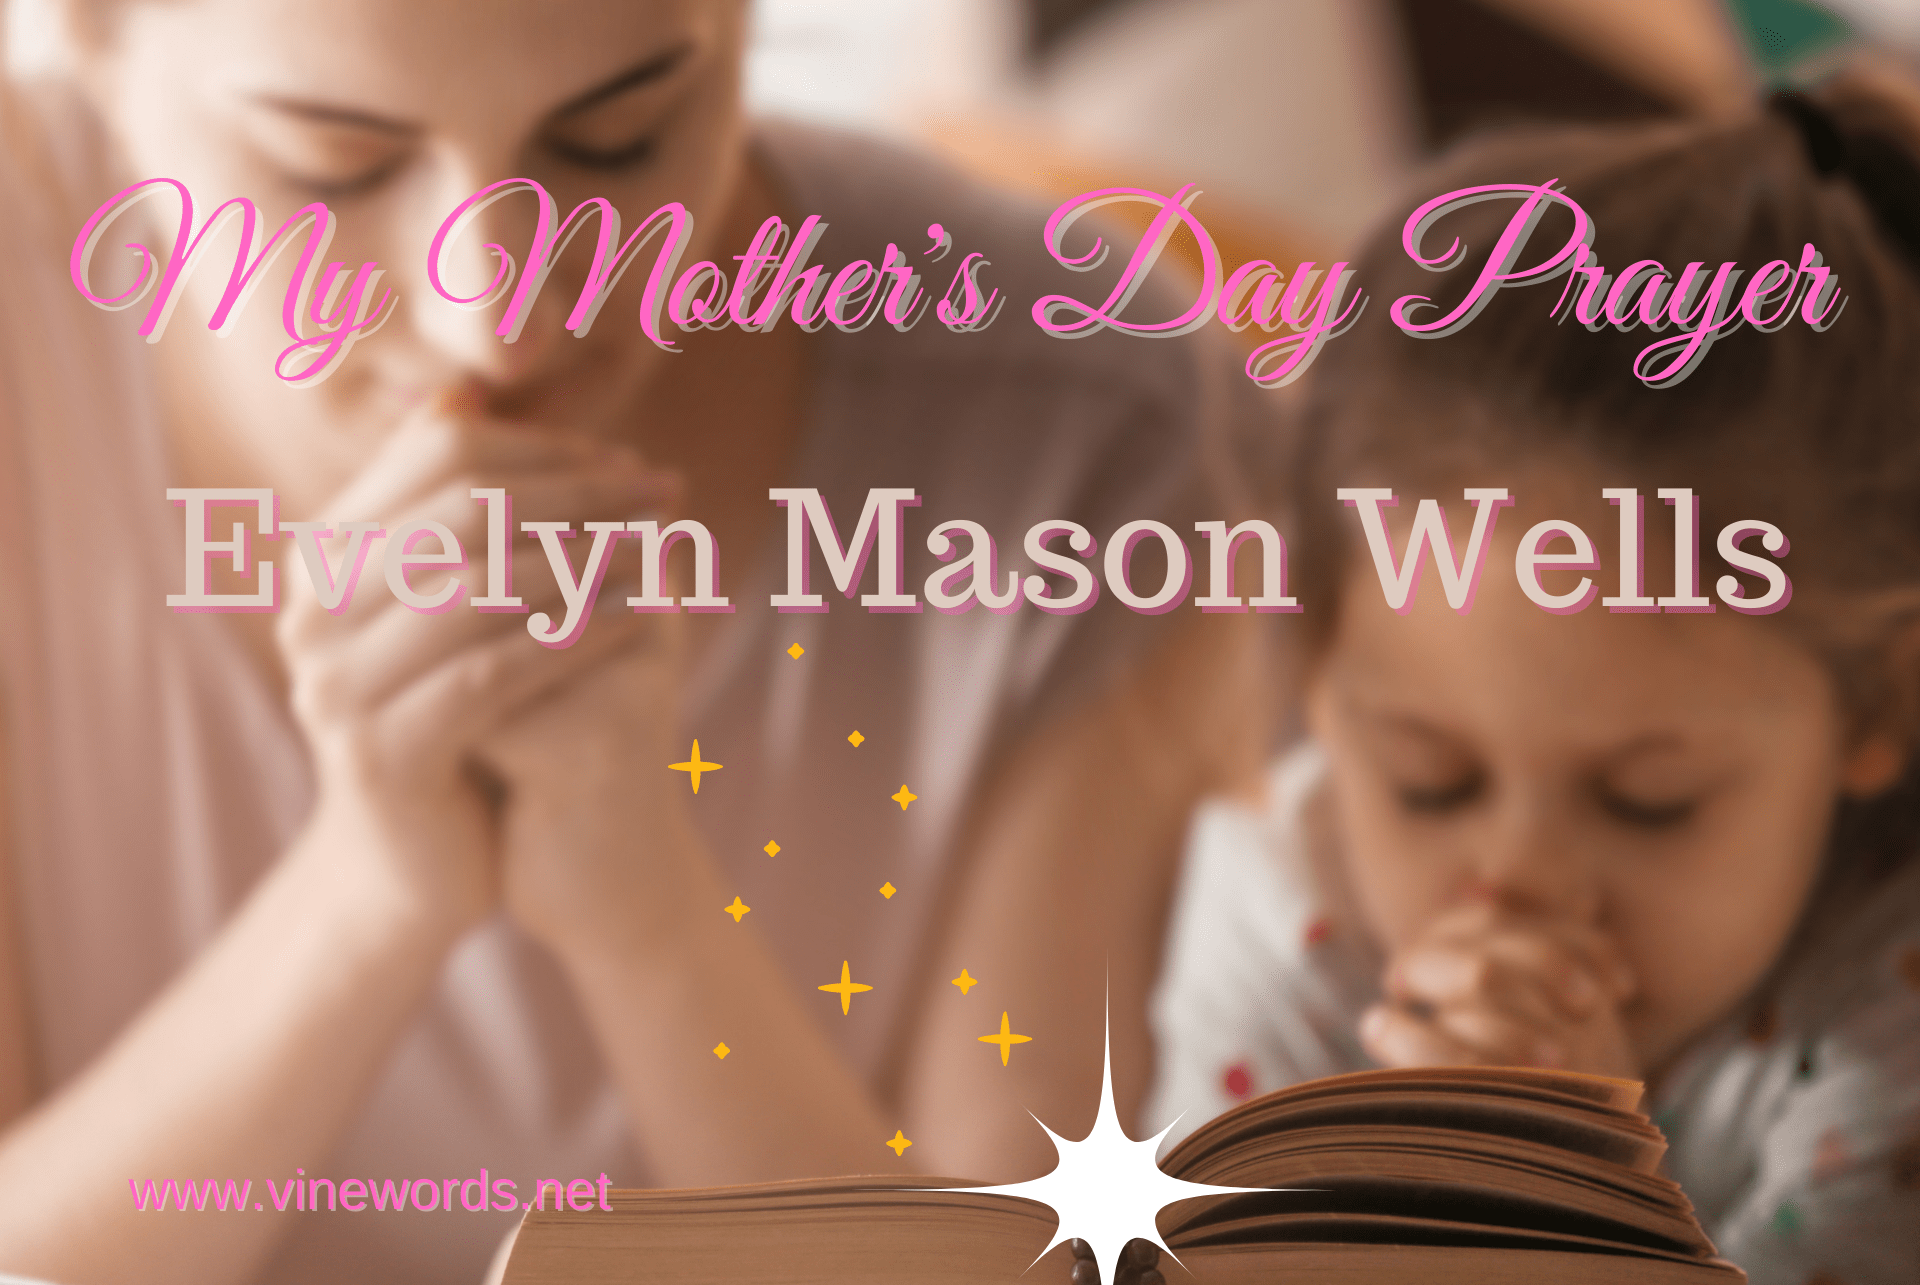 Evelyn Mason Wells: My Mother's Day Prayer